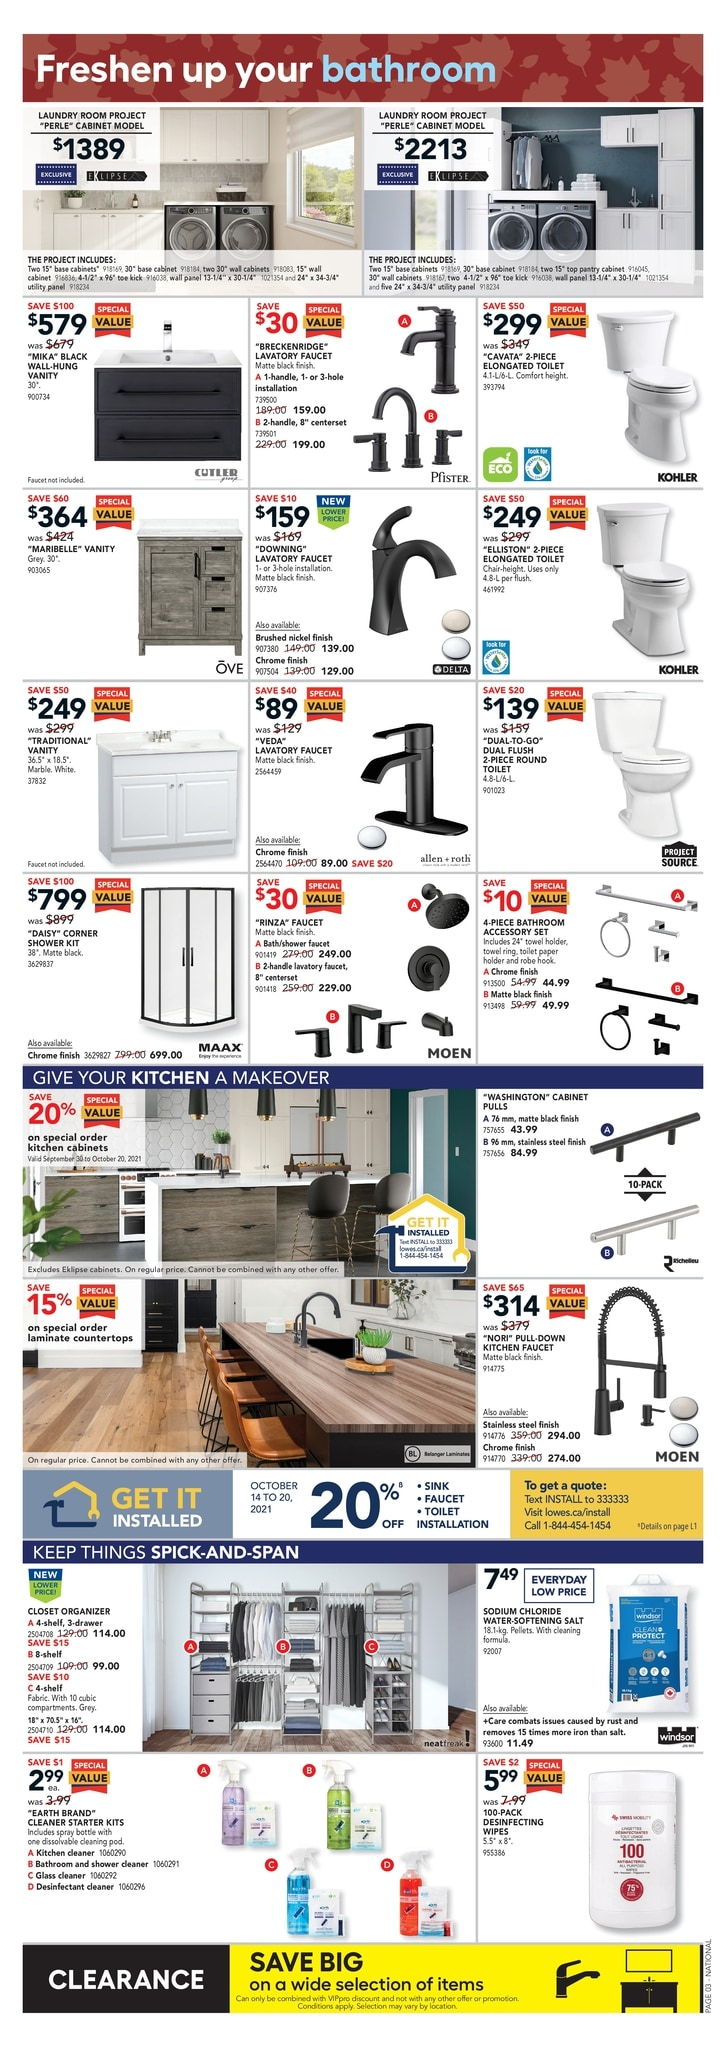 Lowe's - Weekly Flyer Specials - Page 4